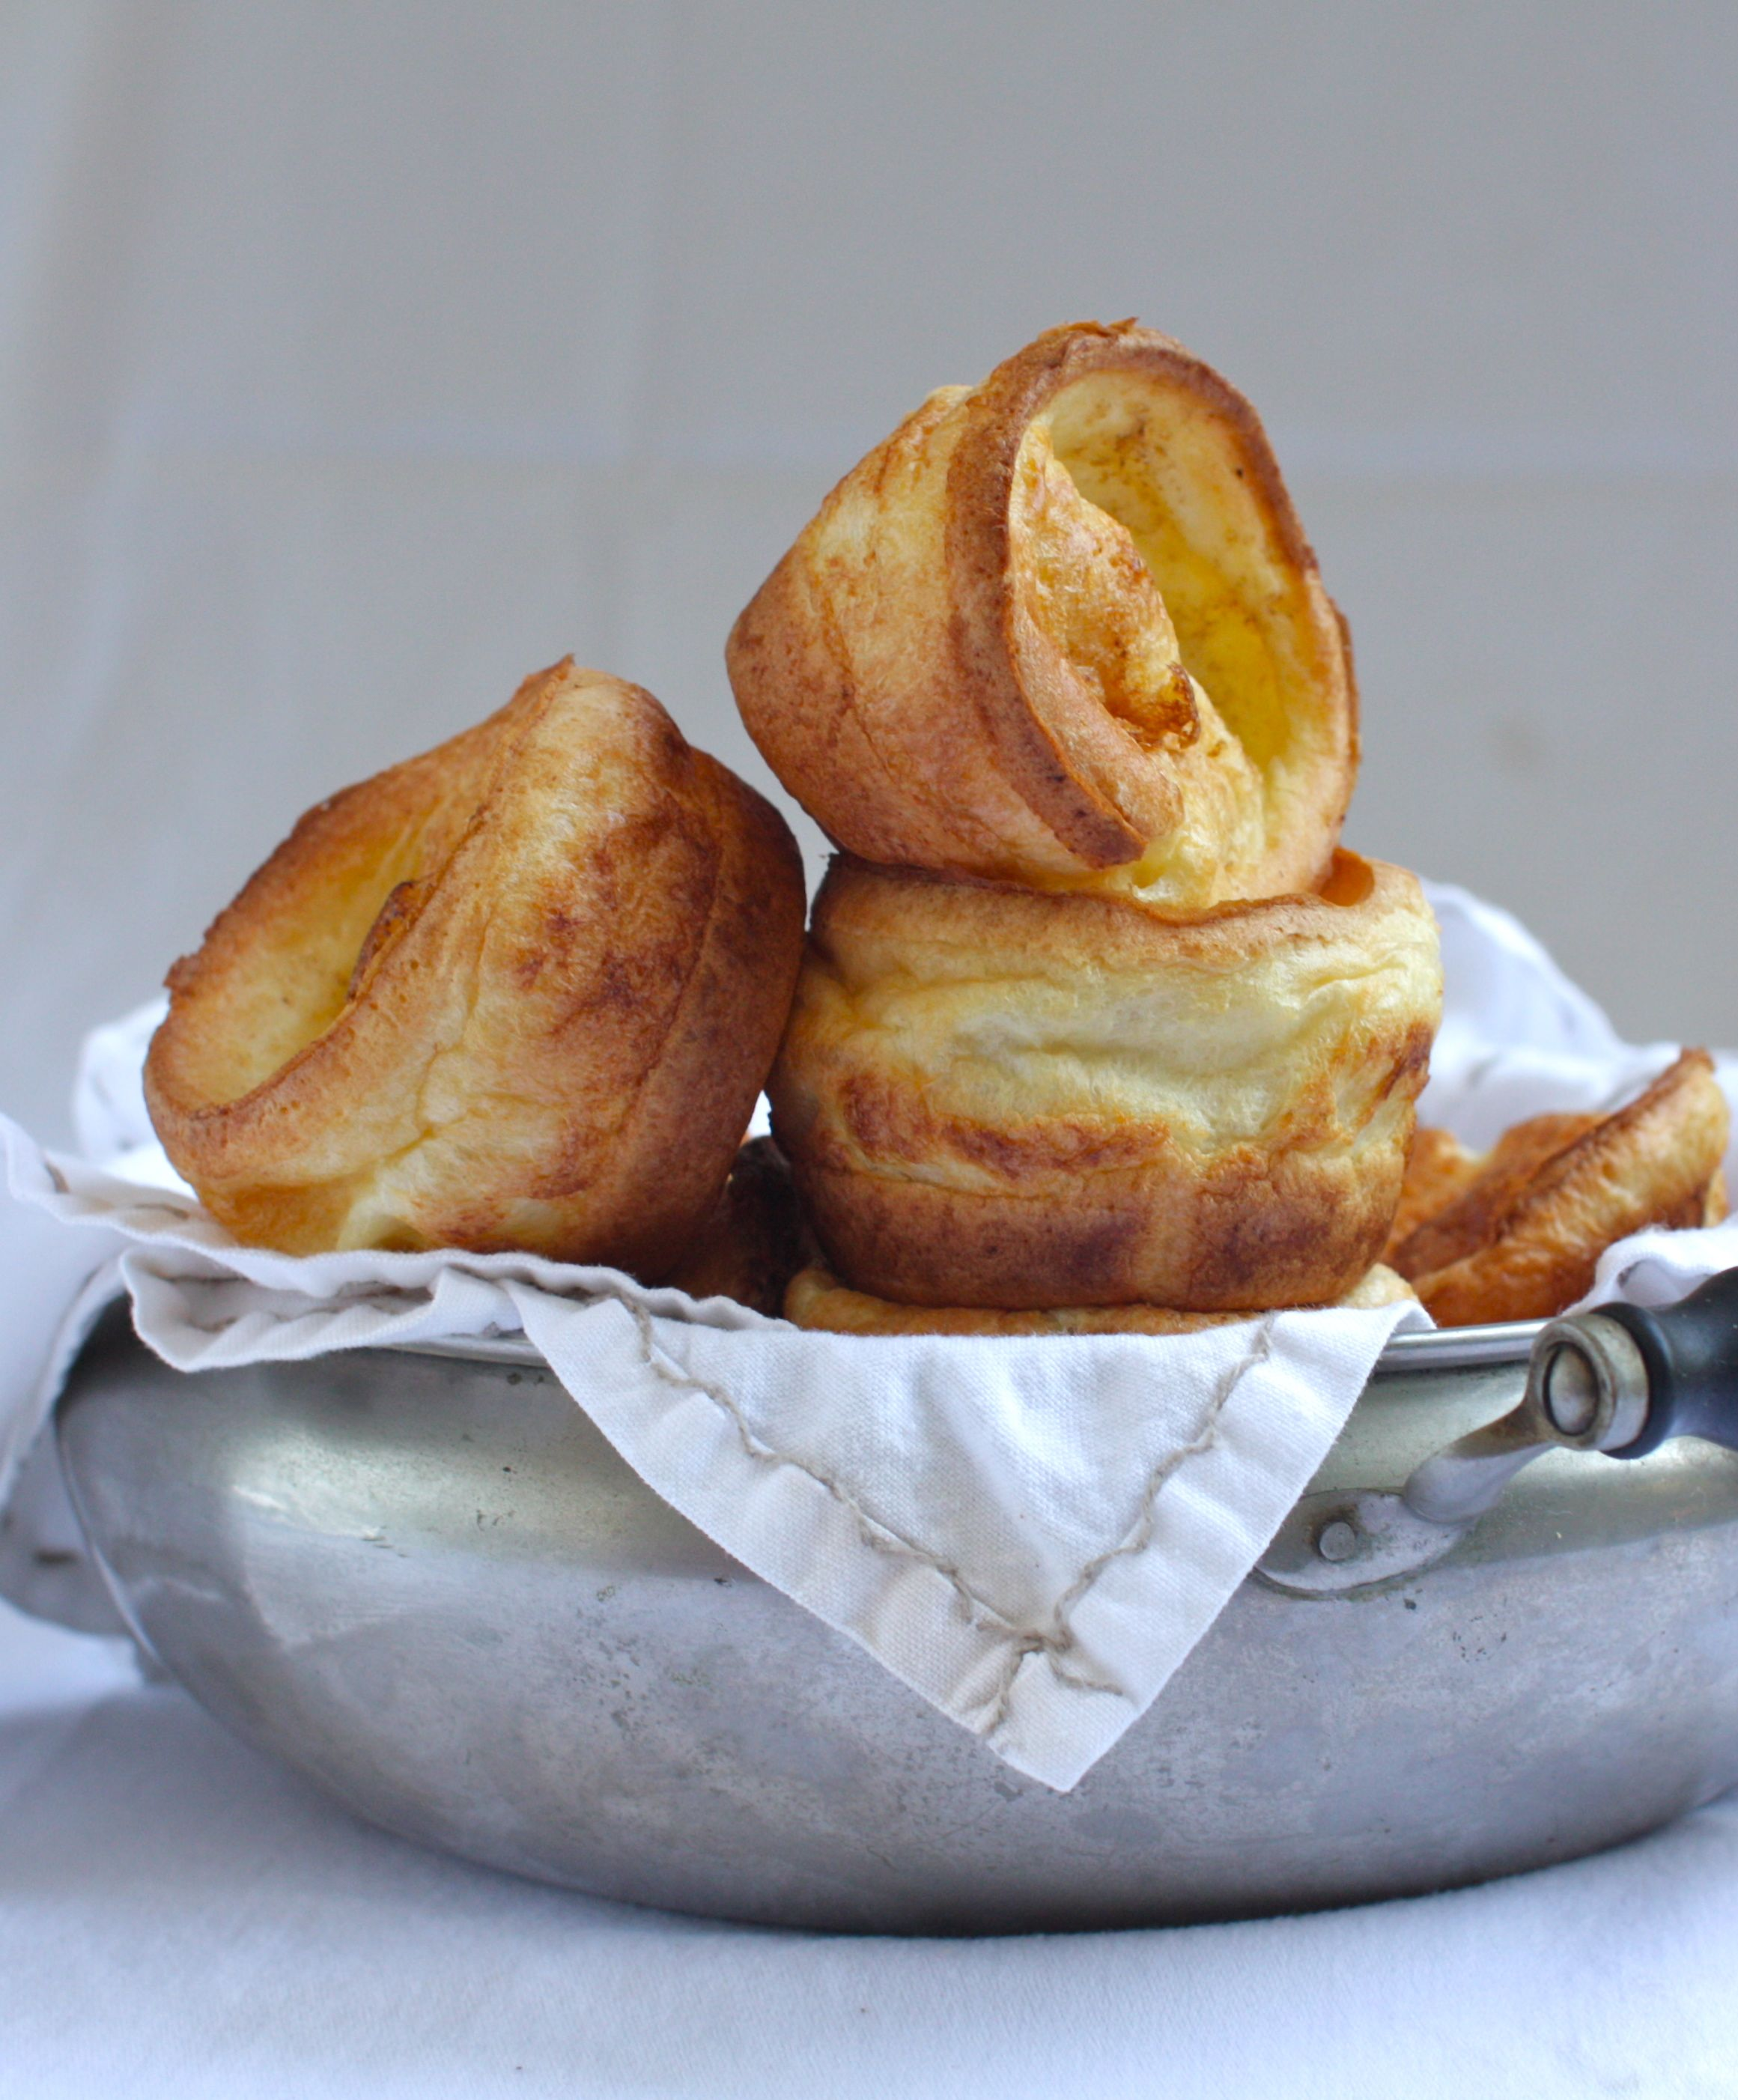 Cooking School: How to Make Perfect Yorkshire Pudding | Simple Bites